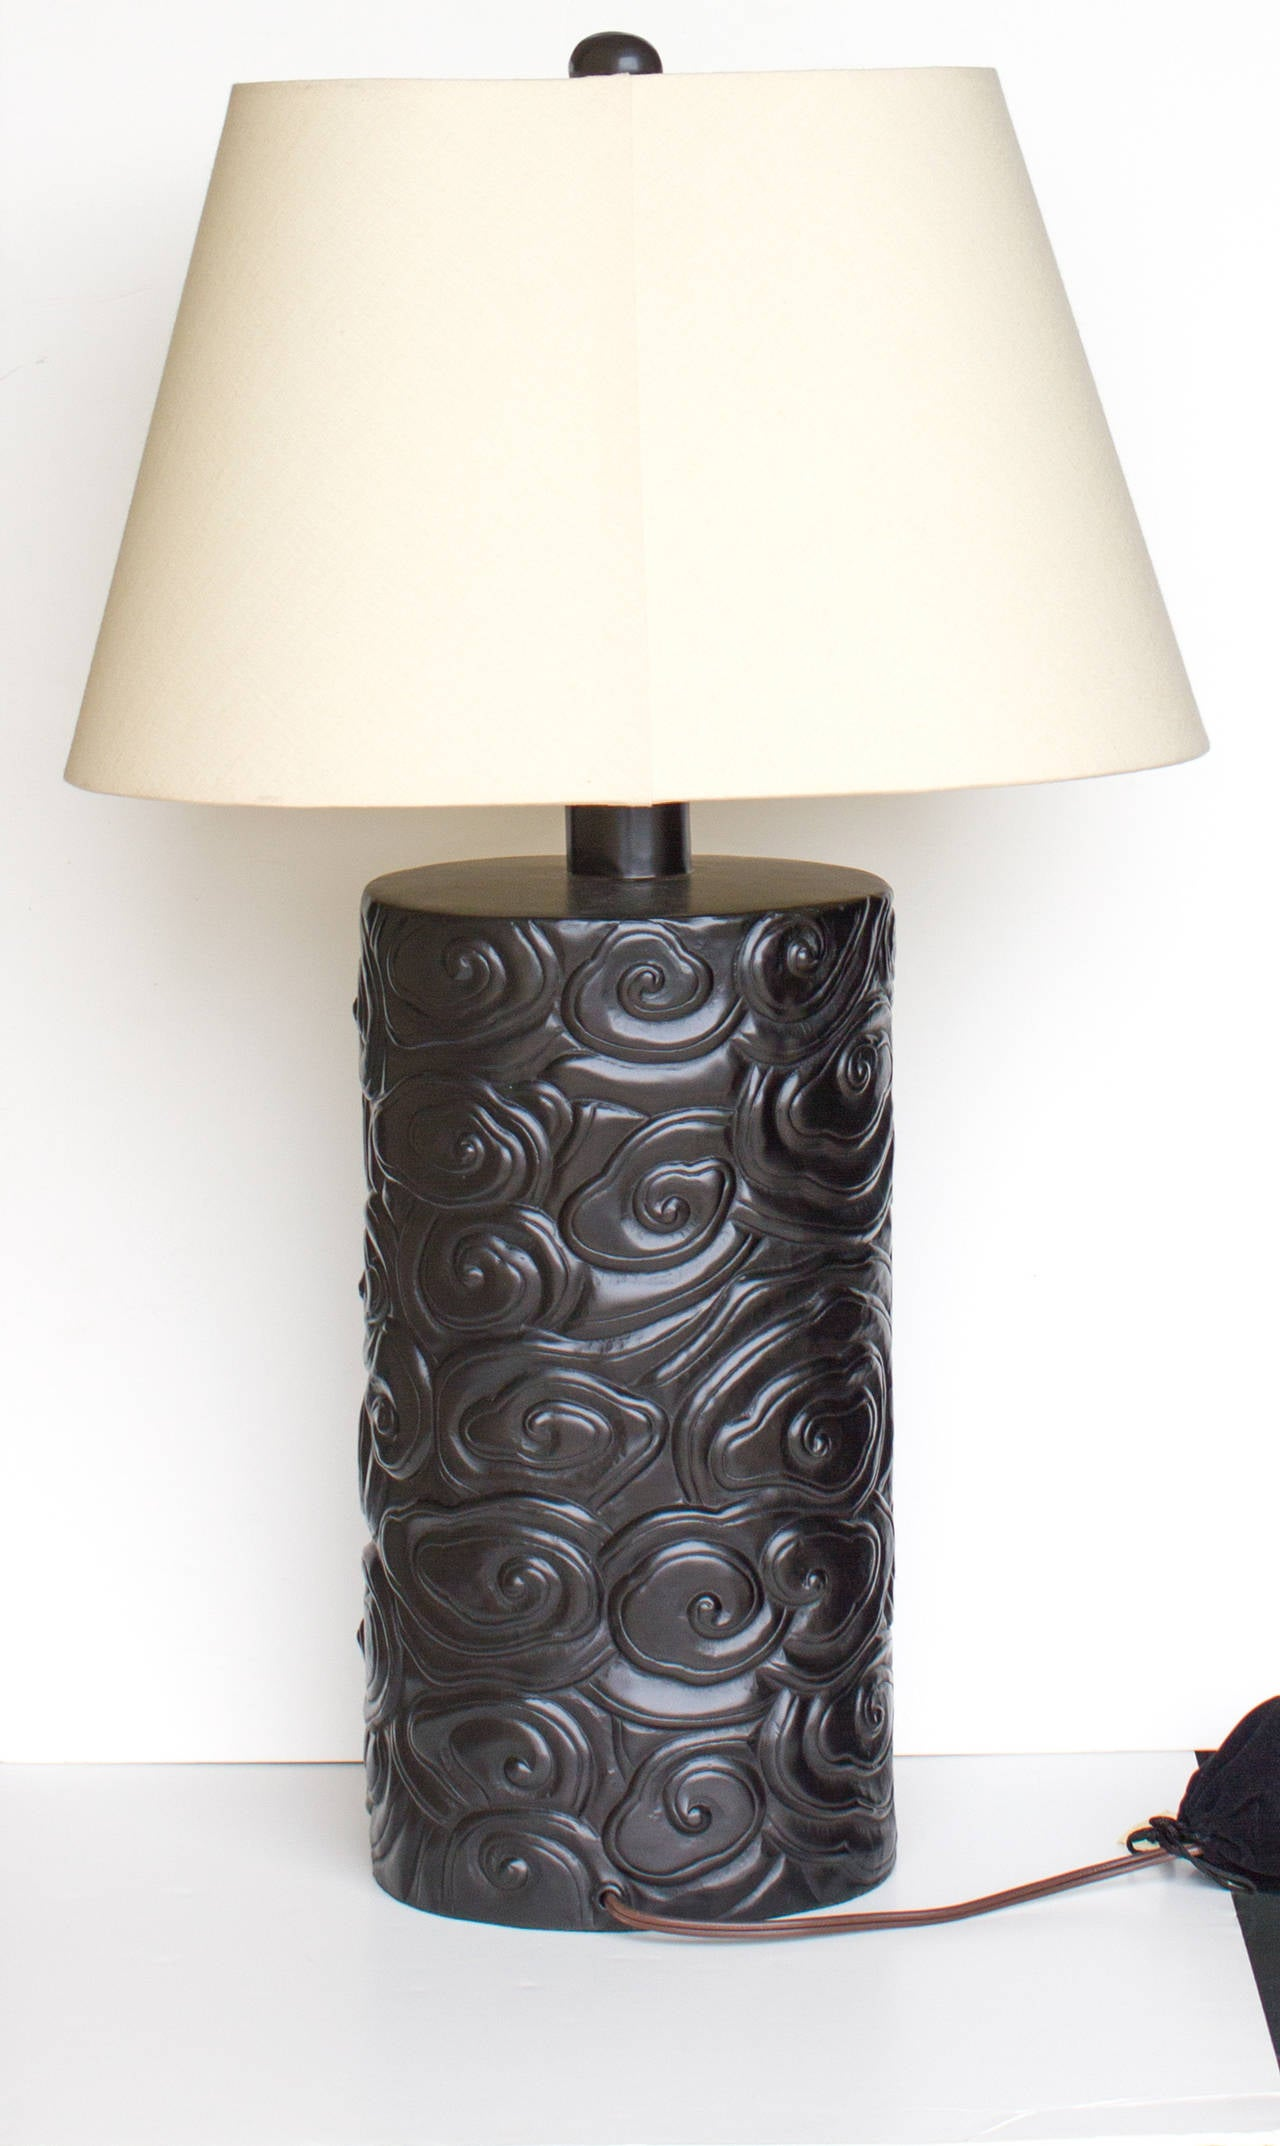 Robert Kuo Cloud Lamp In Black Copper At 1stdibs